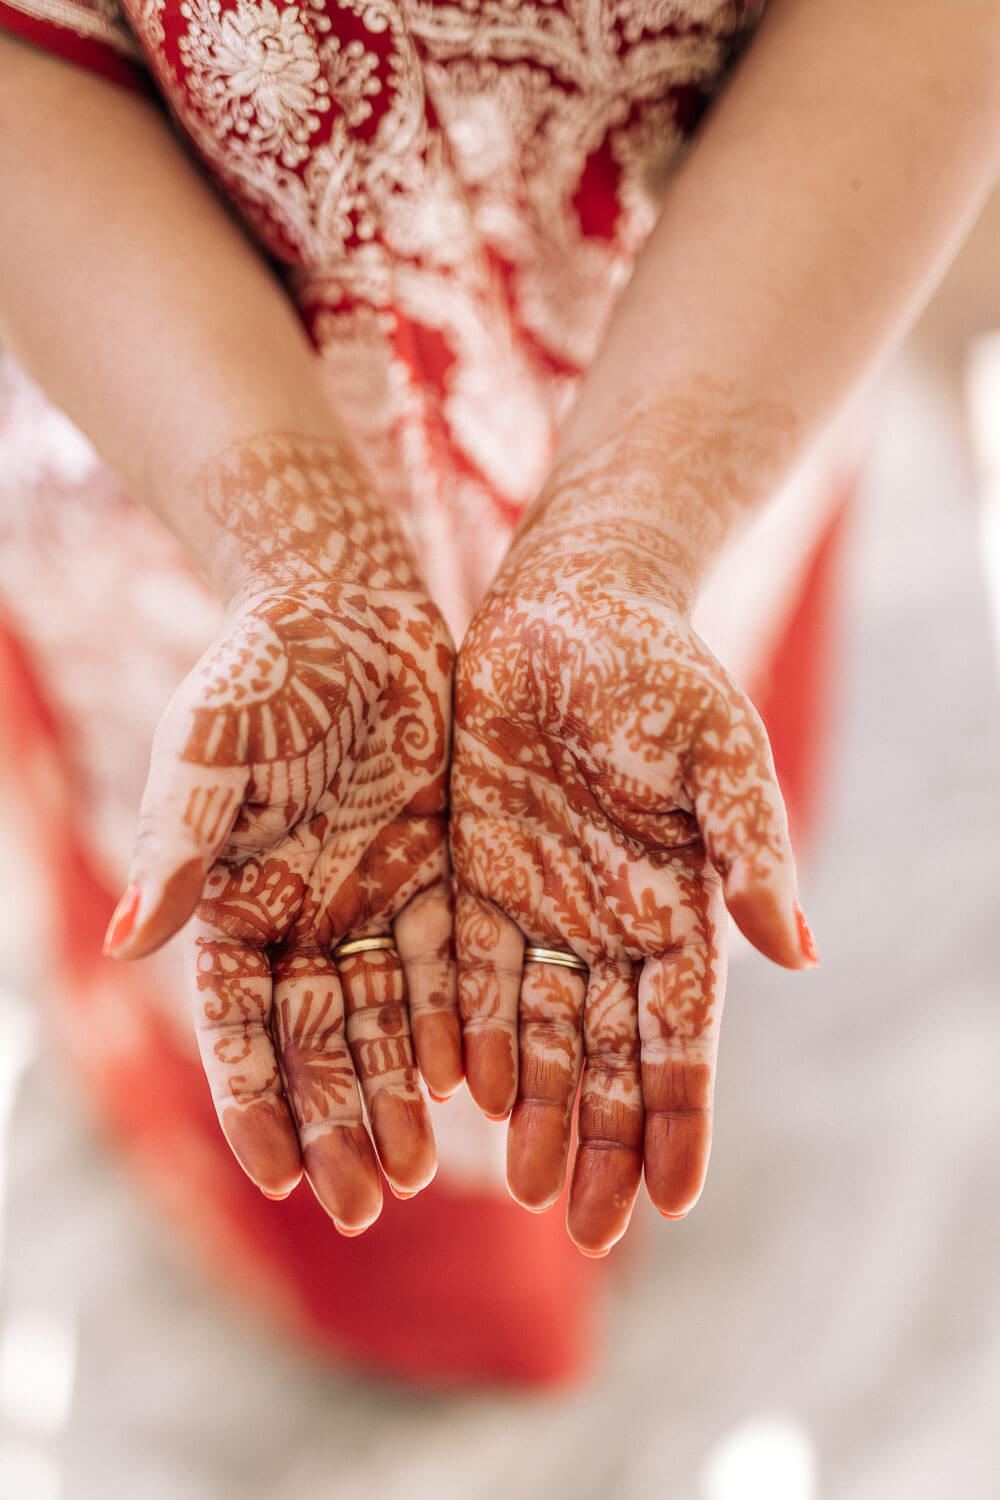 hands covers in henna on an indian brides wedding day